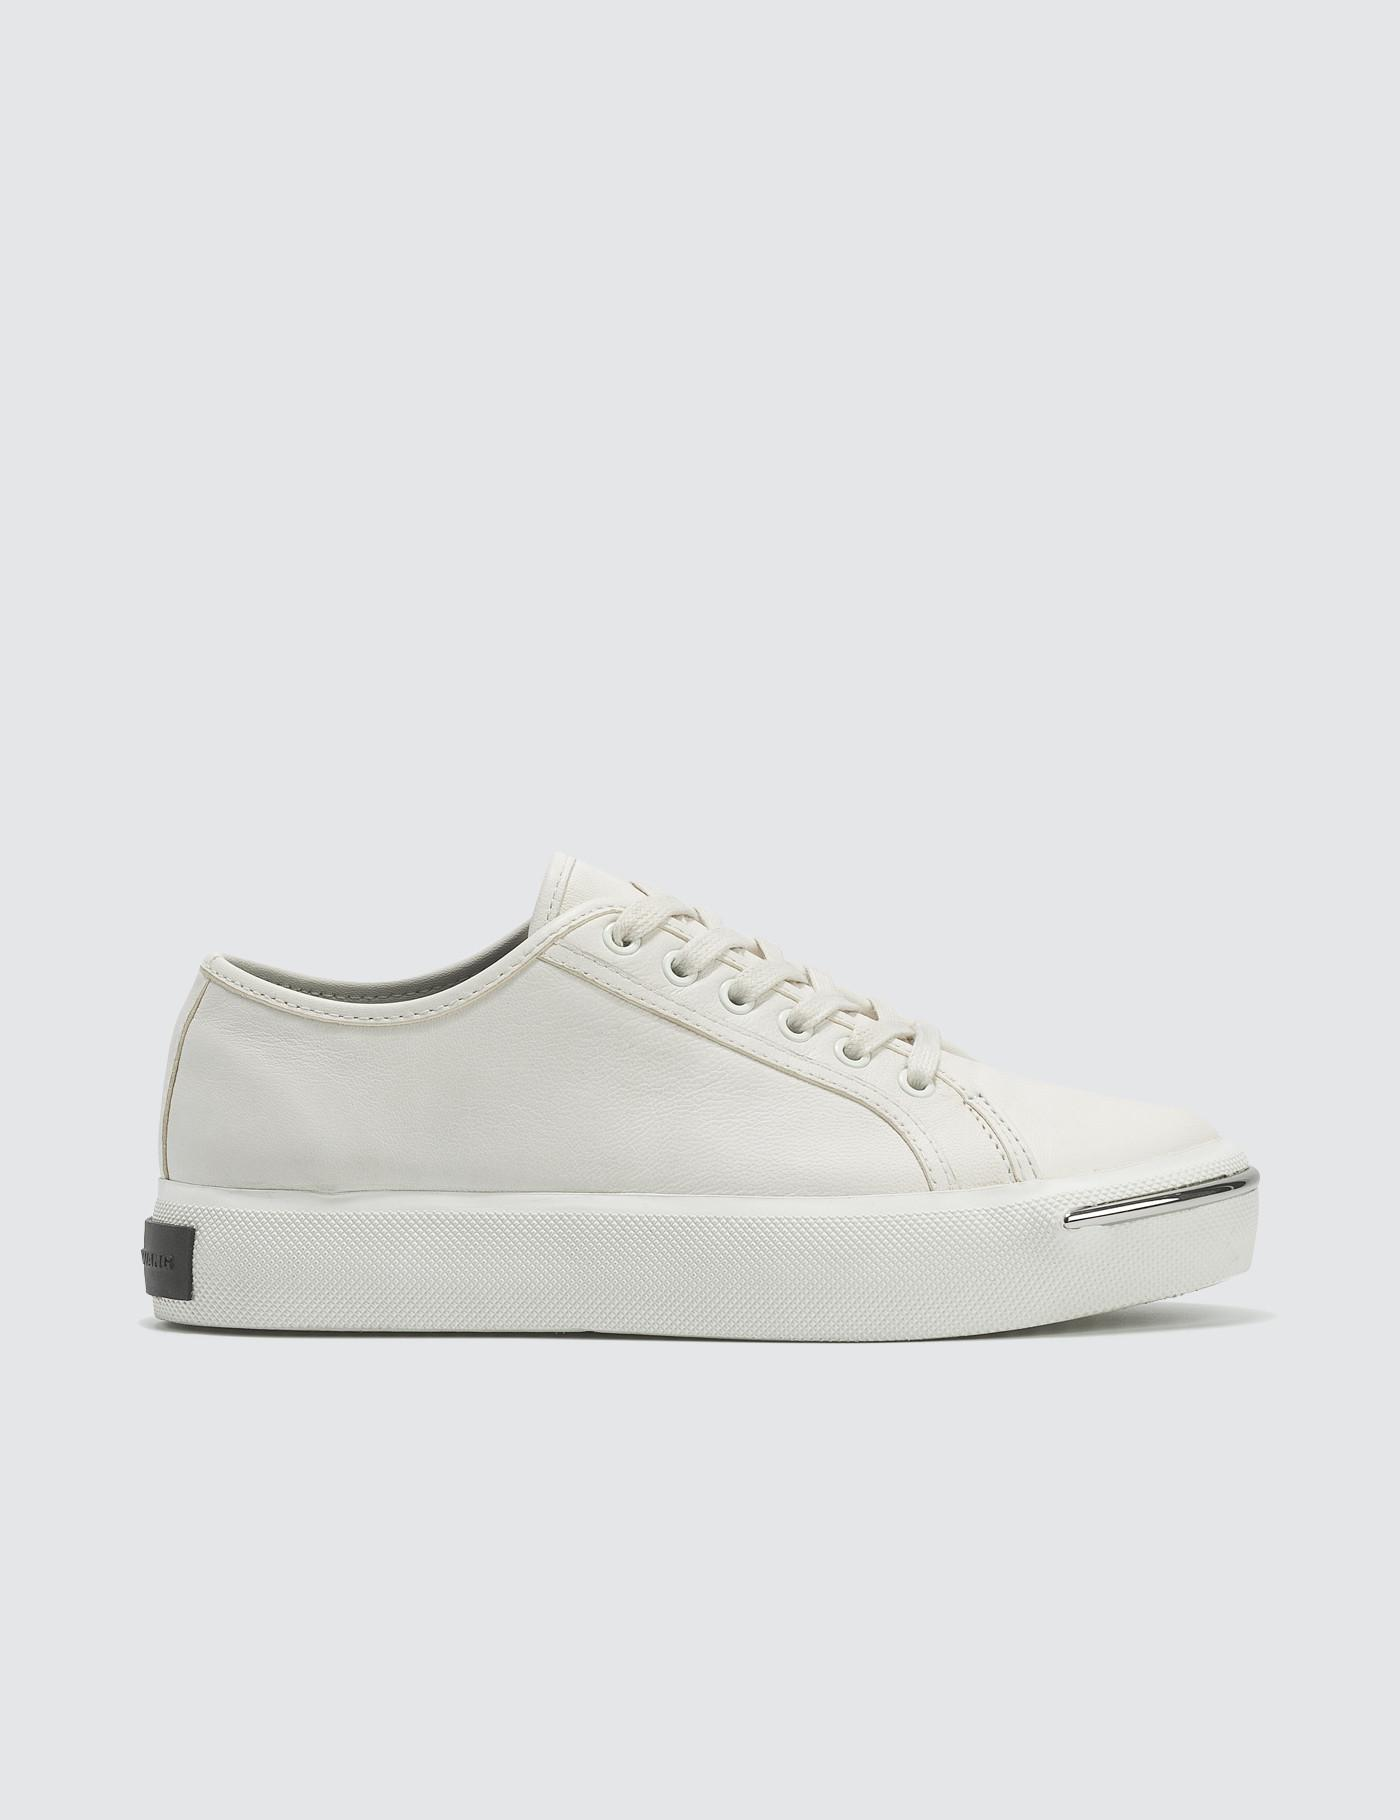 3a11eb5015d6 Alexander Wang Pia Low White Leather Sneakers in White - Lyst